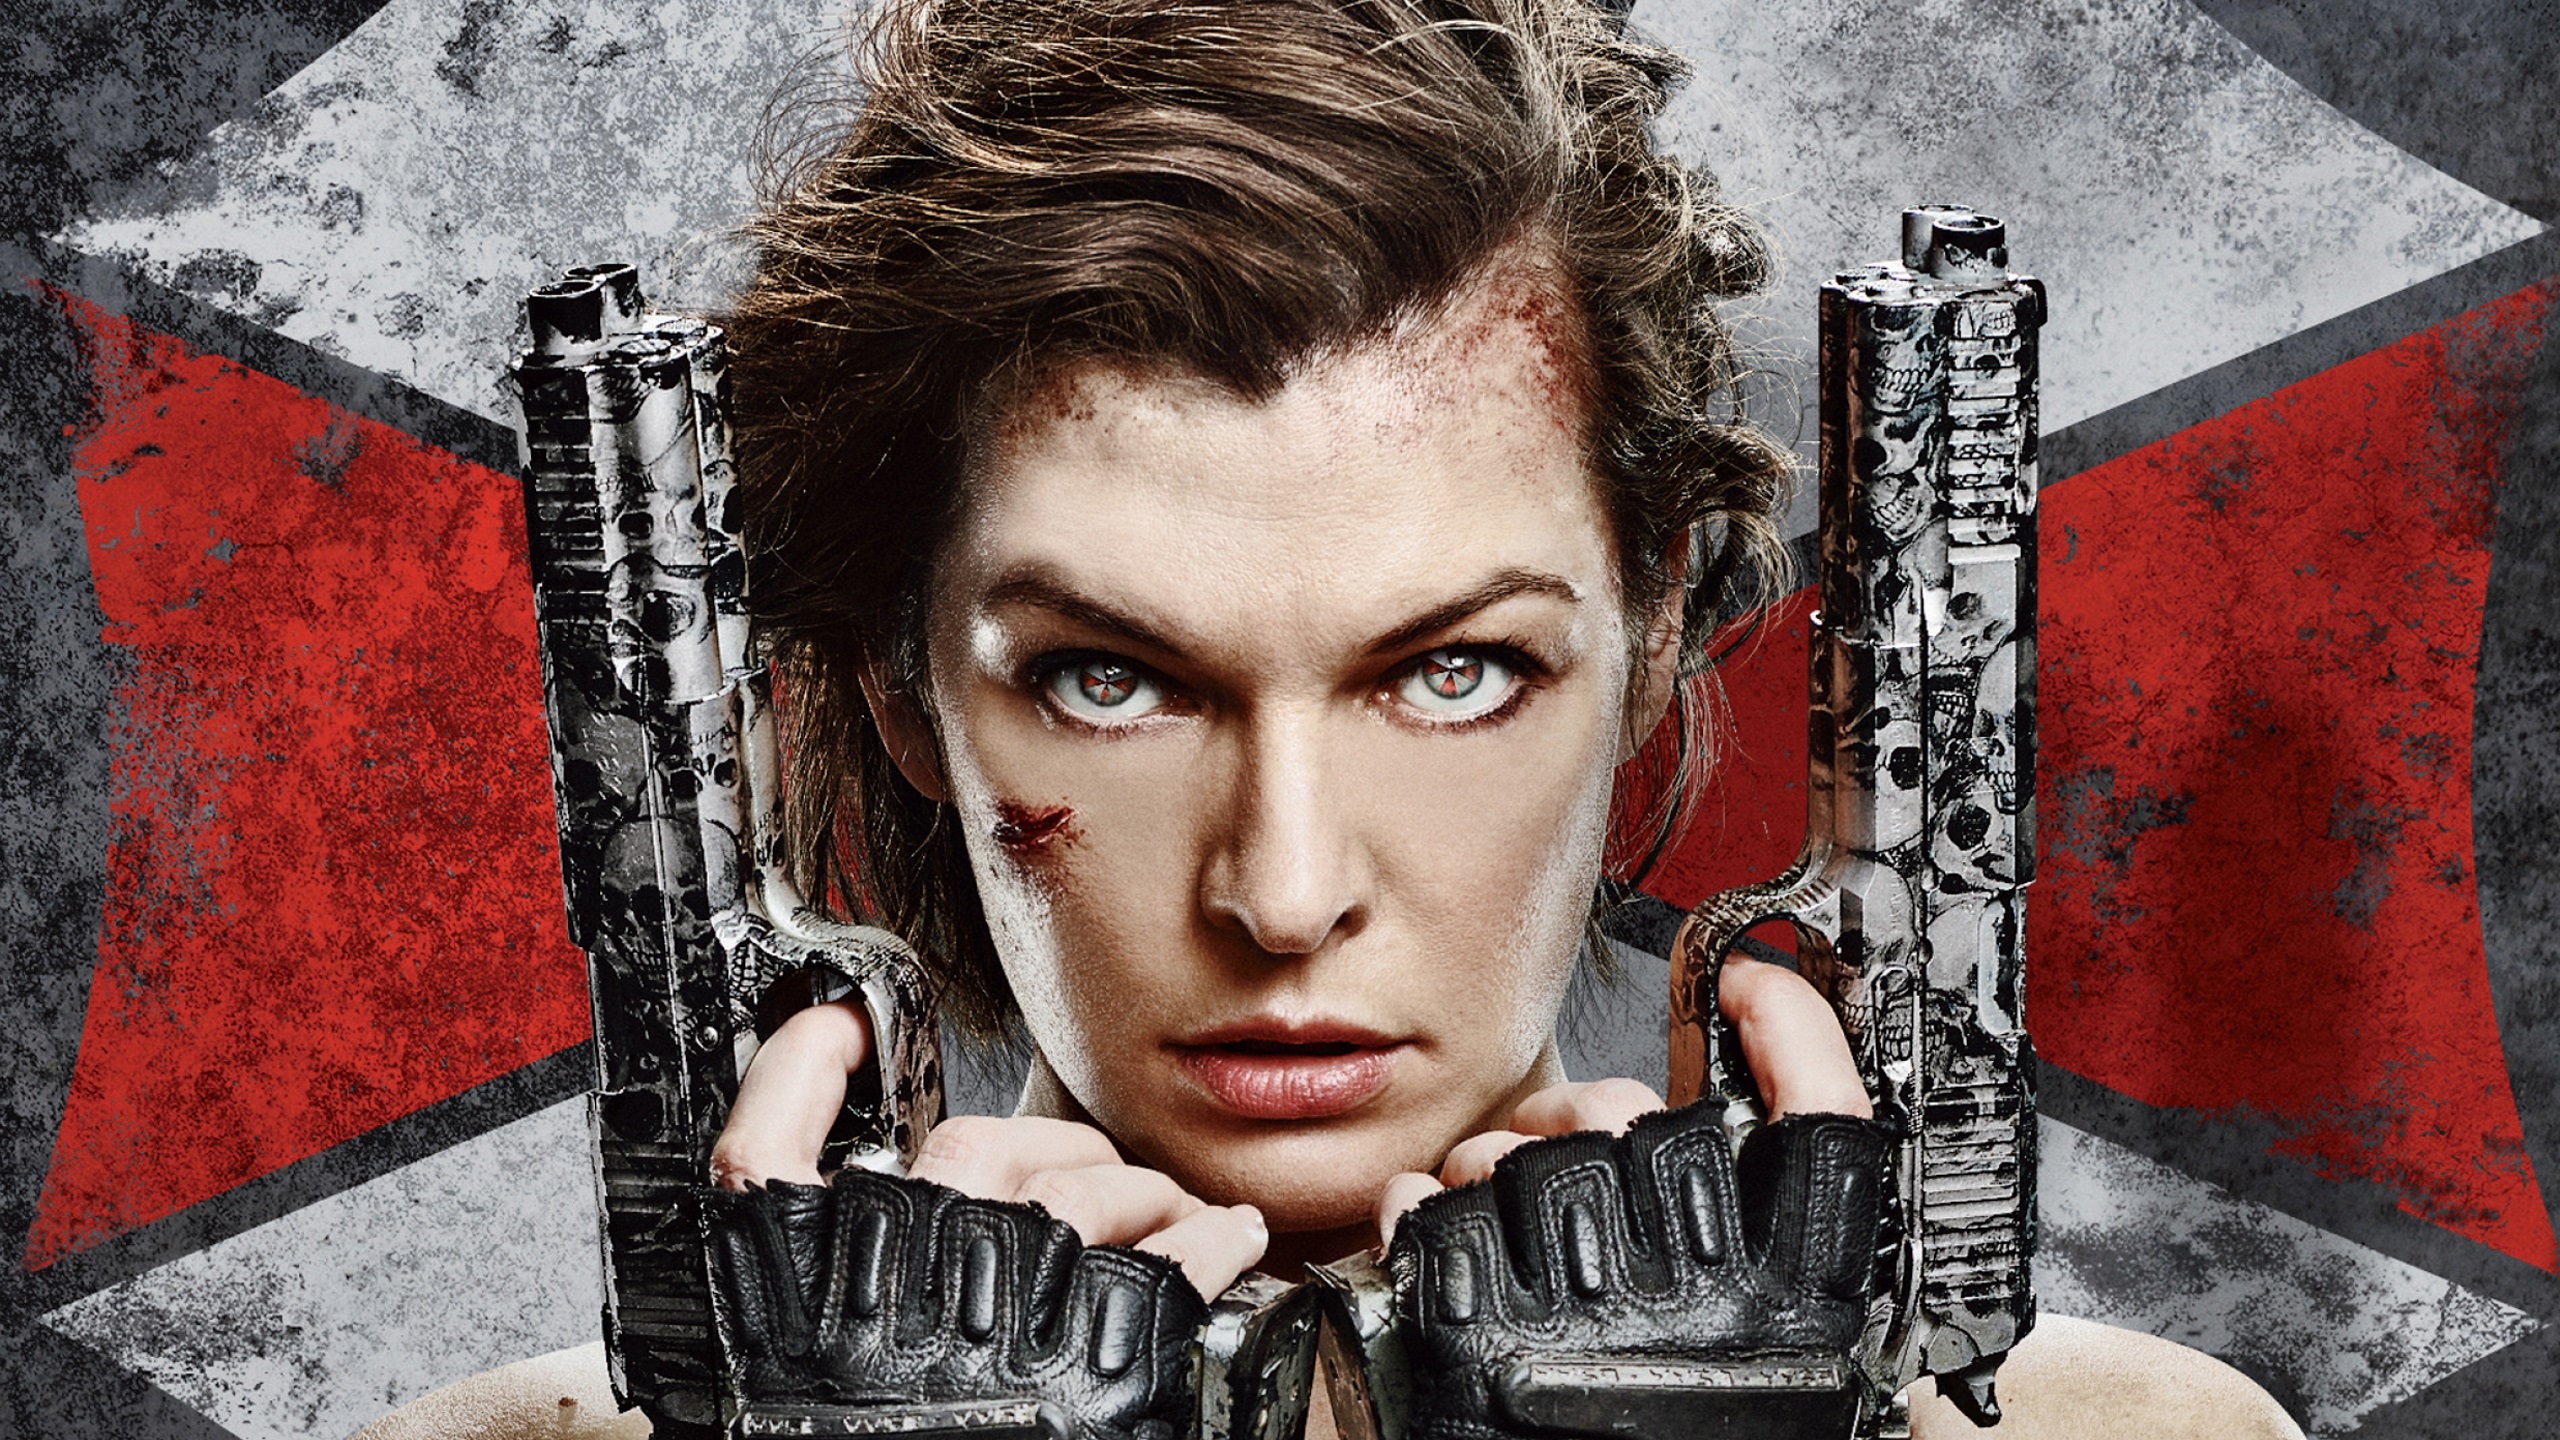 resident evil final chapter download full movie